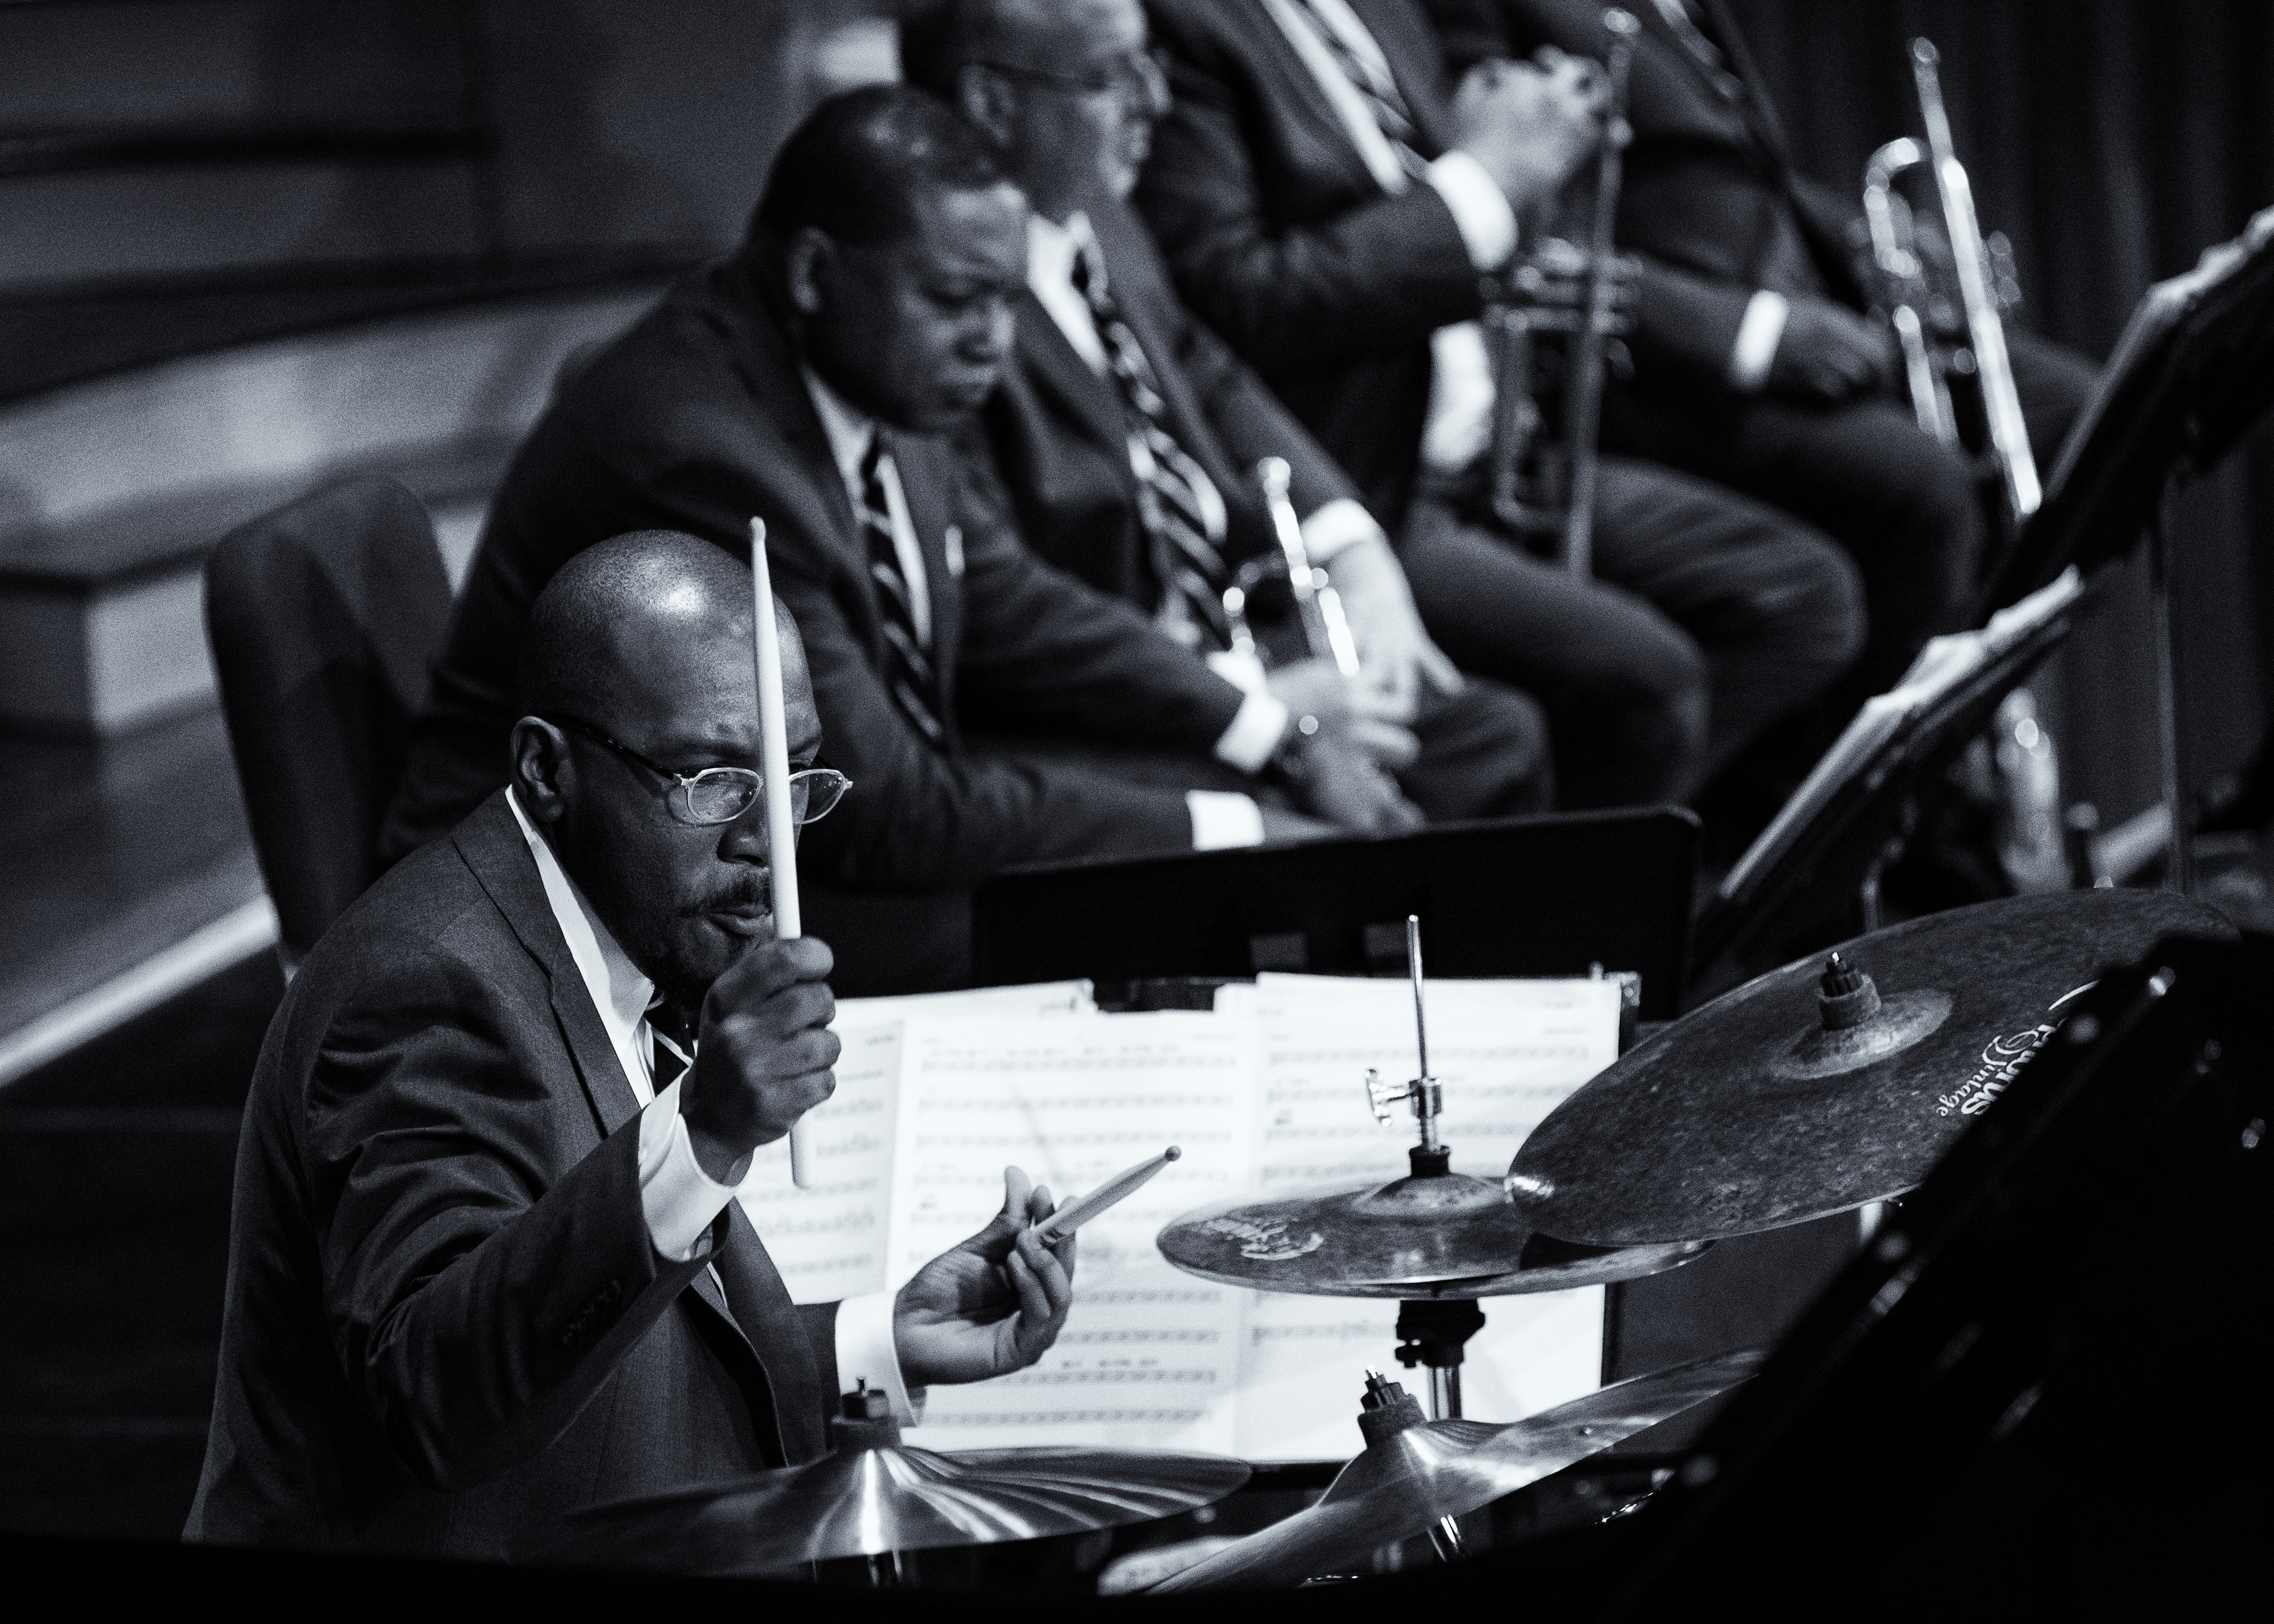 Ali Jackson: Jazz At Lincoln Center Orchestra With Wynton Marsalis